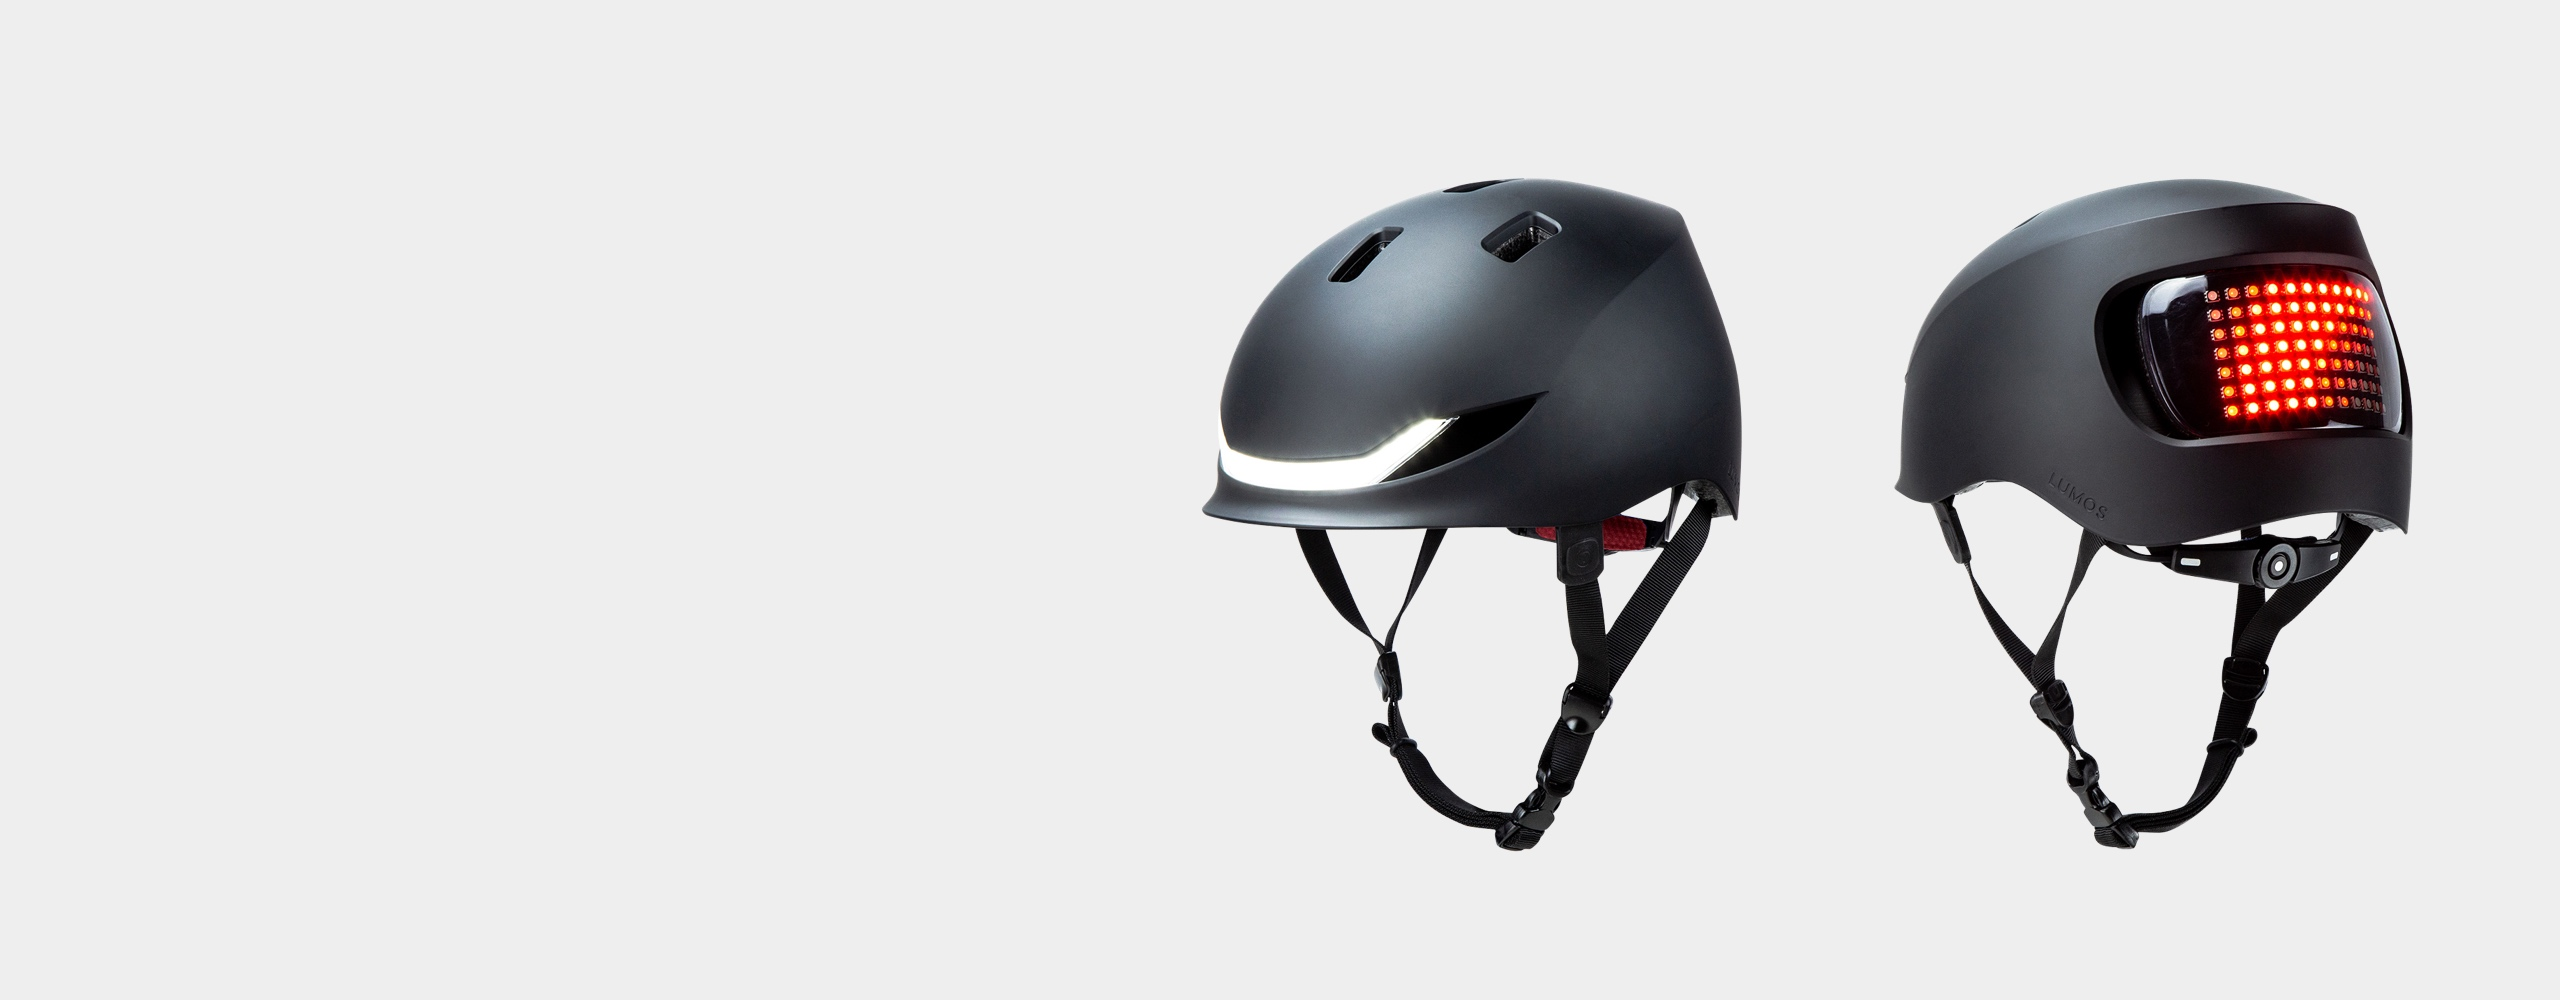 Shop Biking Accessories